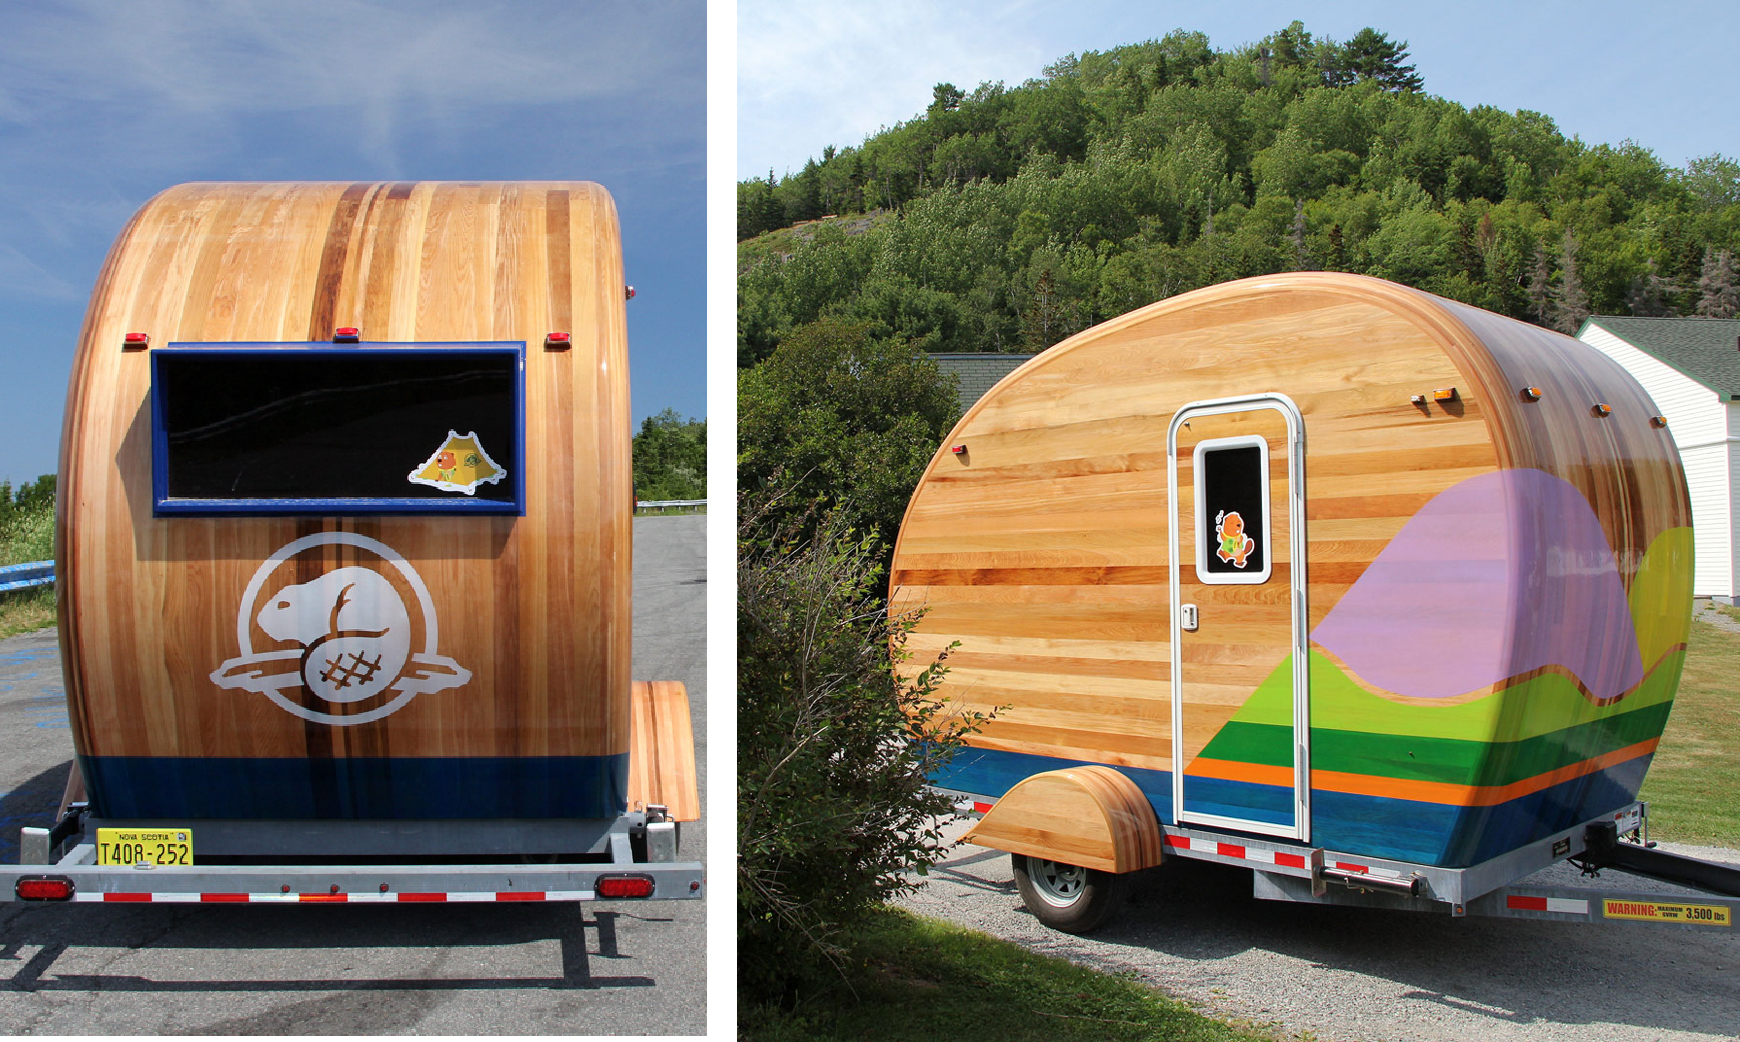 The cedar strip built trailer was inspired by traditional canoes and campers, the graphics were inspired by canoe paddles.